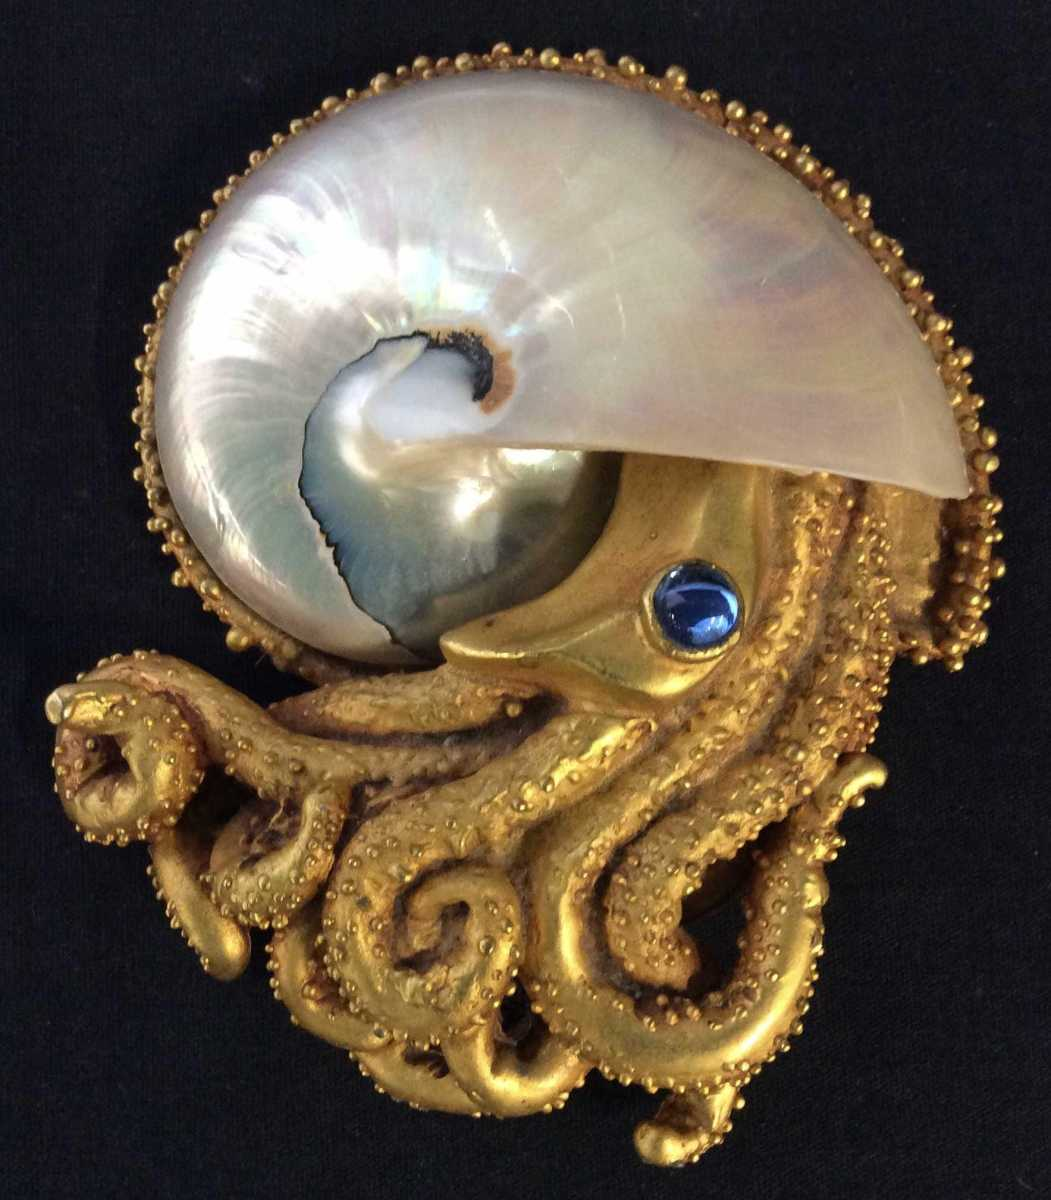 "A gold leaf and shell octopus figural tabletop with blue glass eye, signed Lazaro, 6"" x 4-1/2"". Sold by The Benefit Shop Foundation Inc. through LiveAuctioneers for $600."